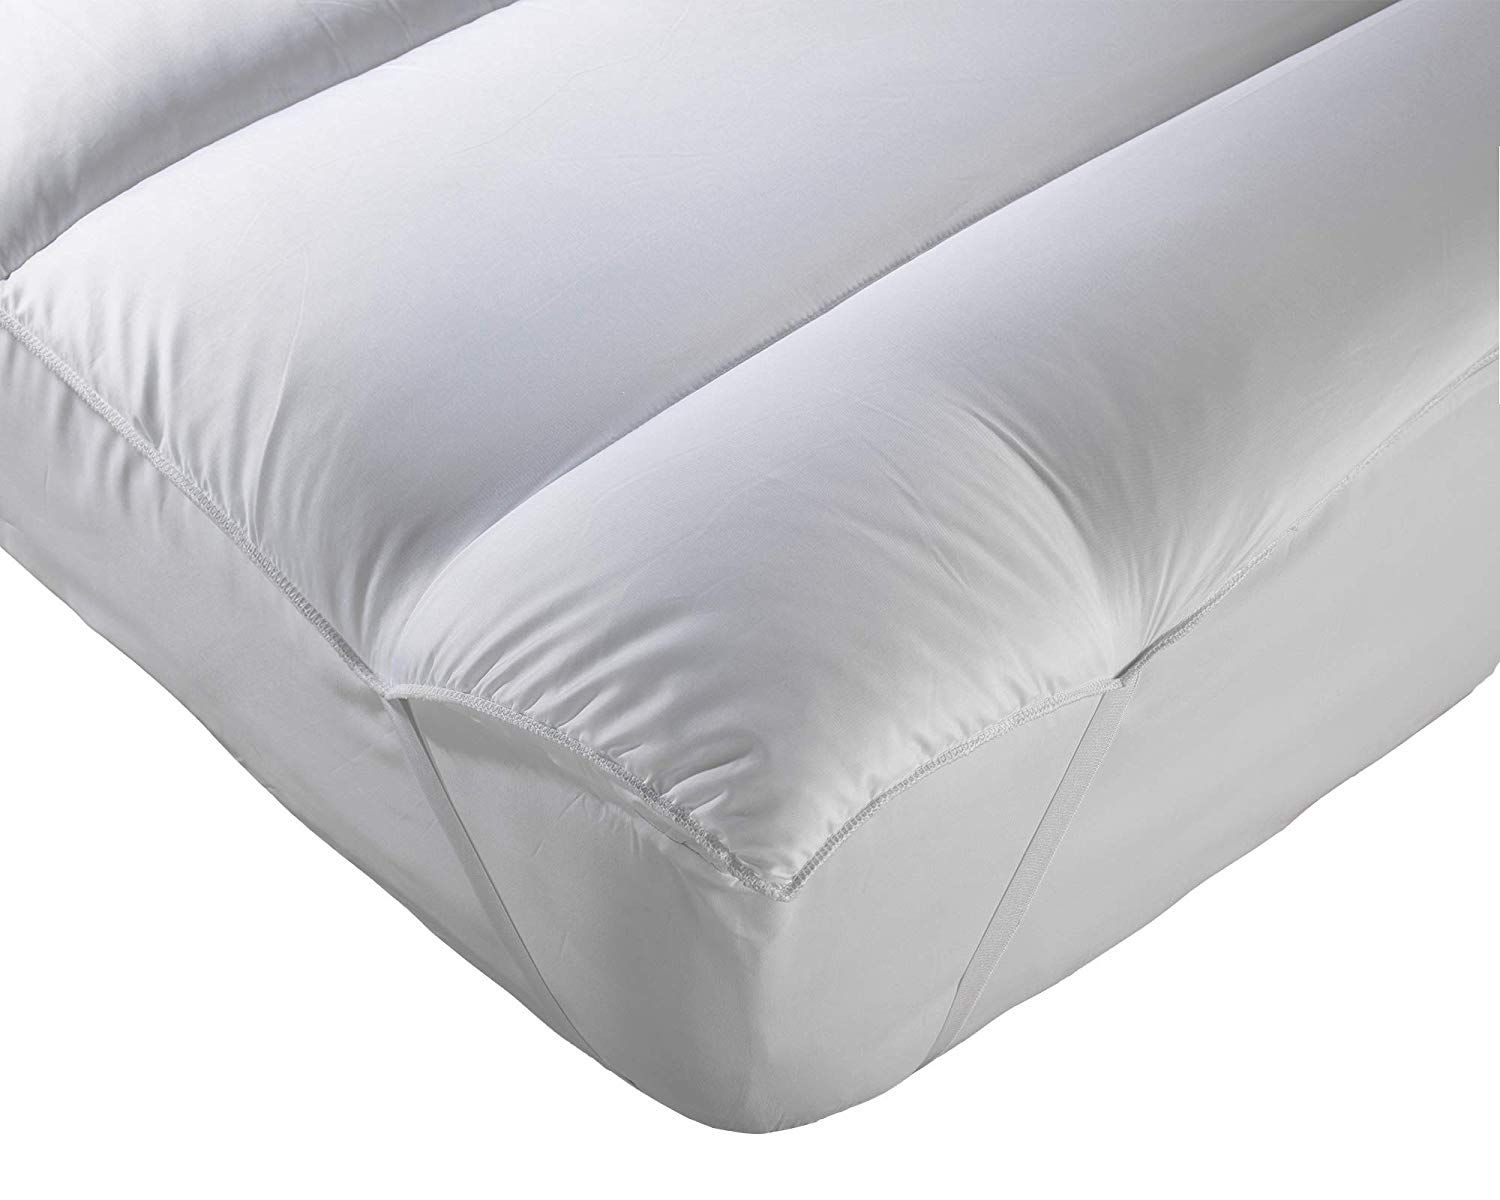 Superior 5 Star Hotel Quality Superking Luxury Peached Microfibre